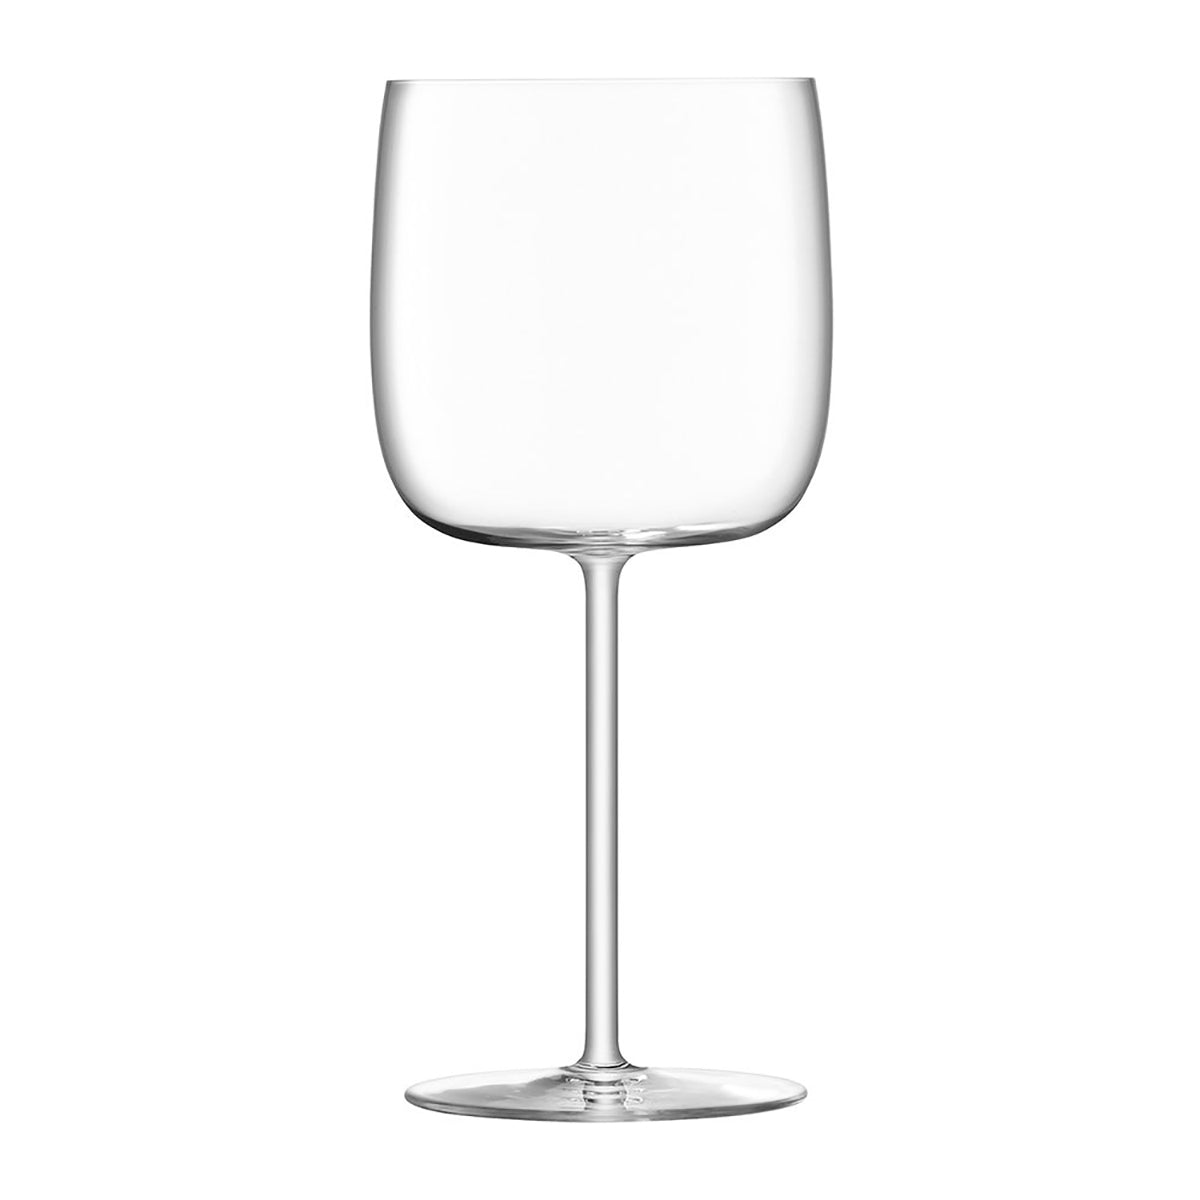 LSA BOROUGH WINE GLASS  |  450ML  |  BOXED SET OF 4 GLASSES